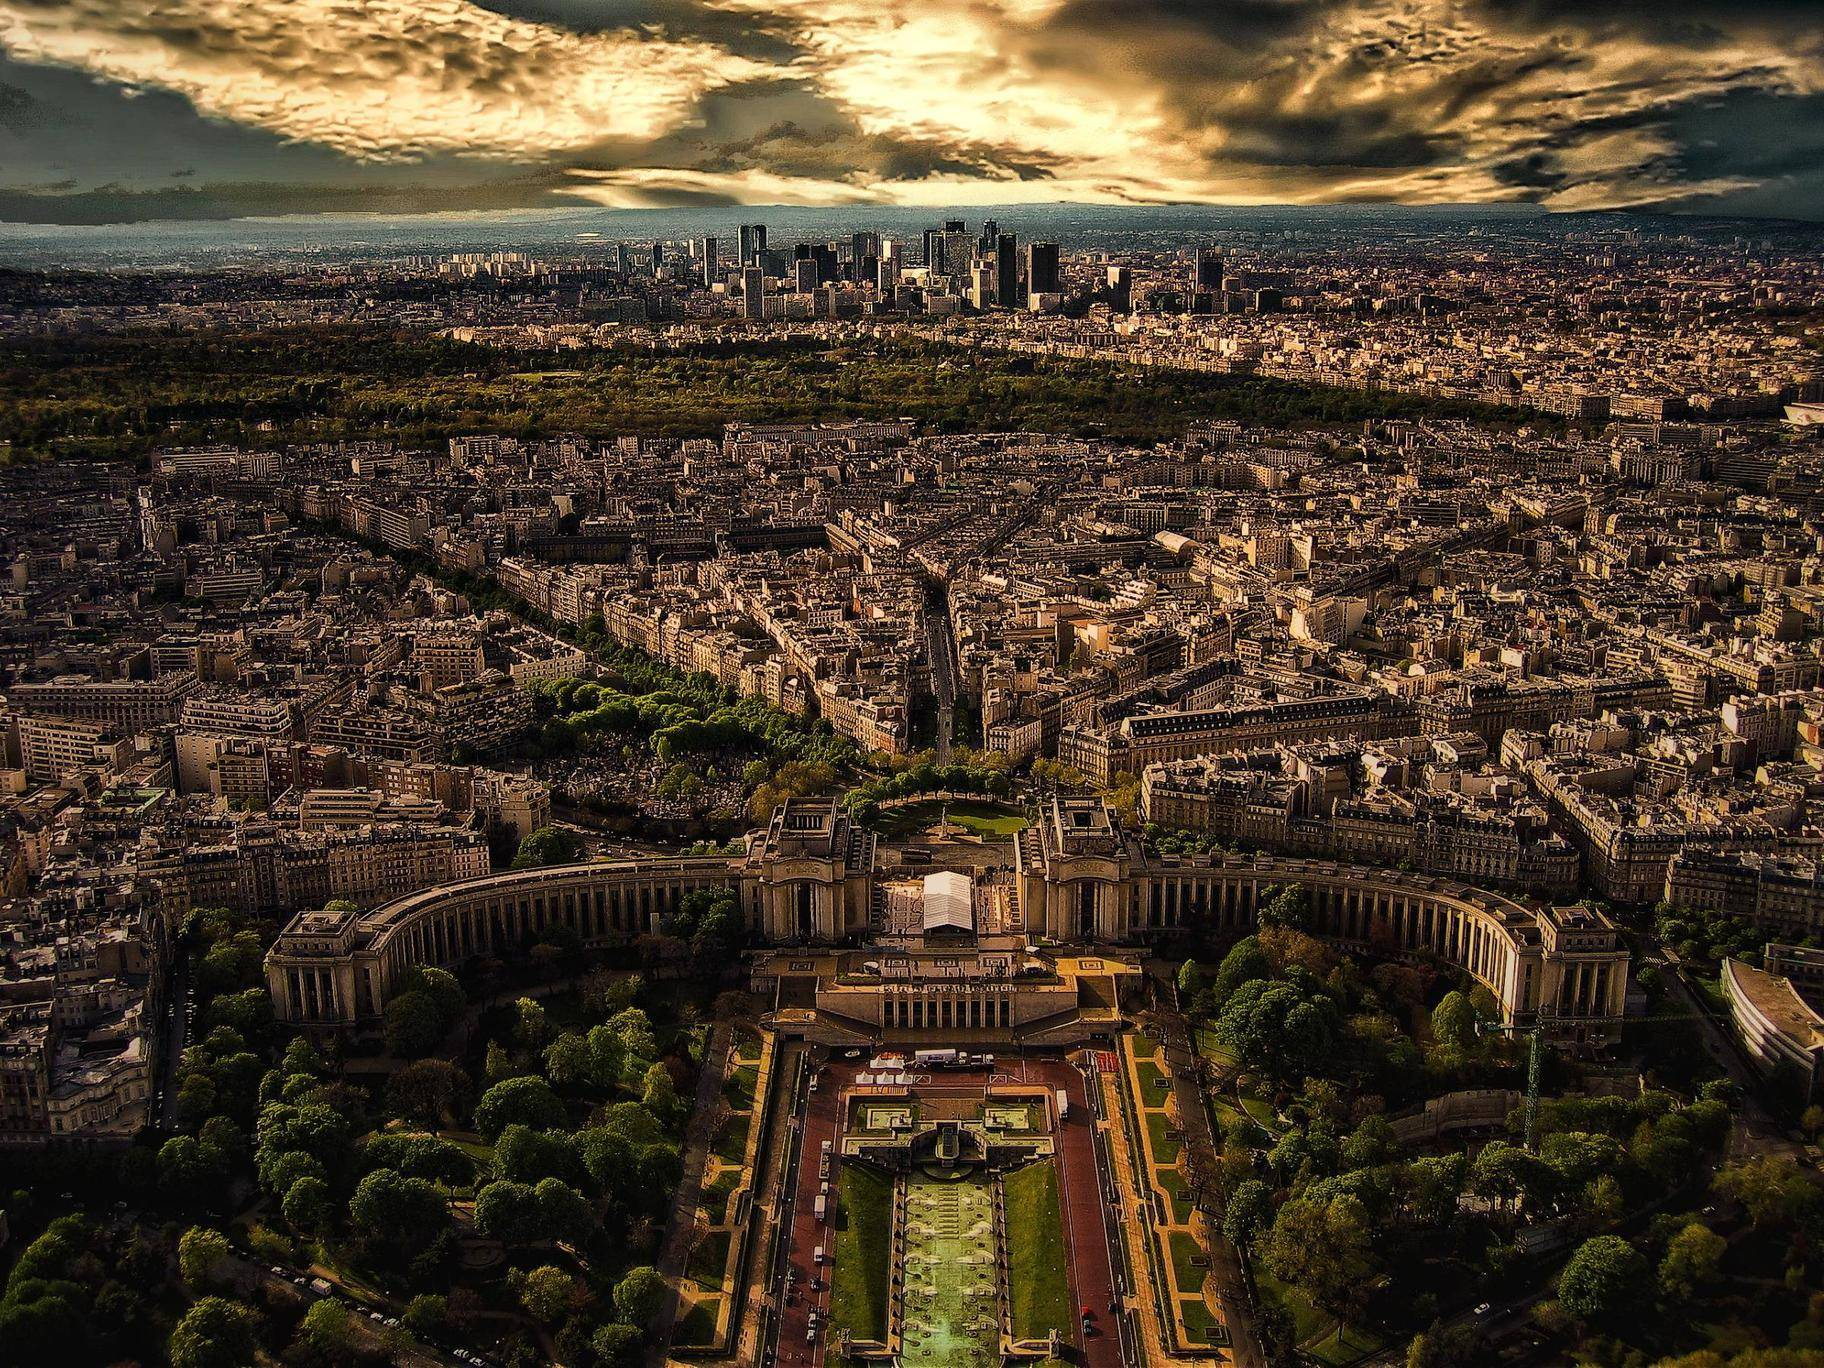 Paris from the Eiffel Tower: http://t.co/1Bhr6TvCa7